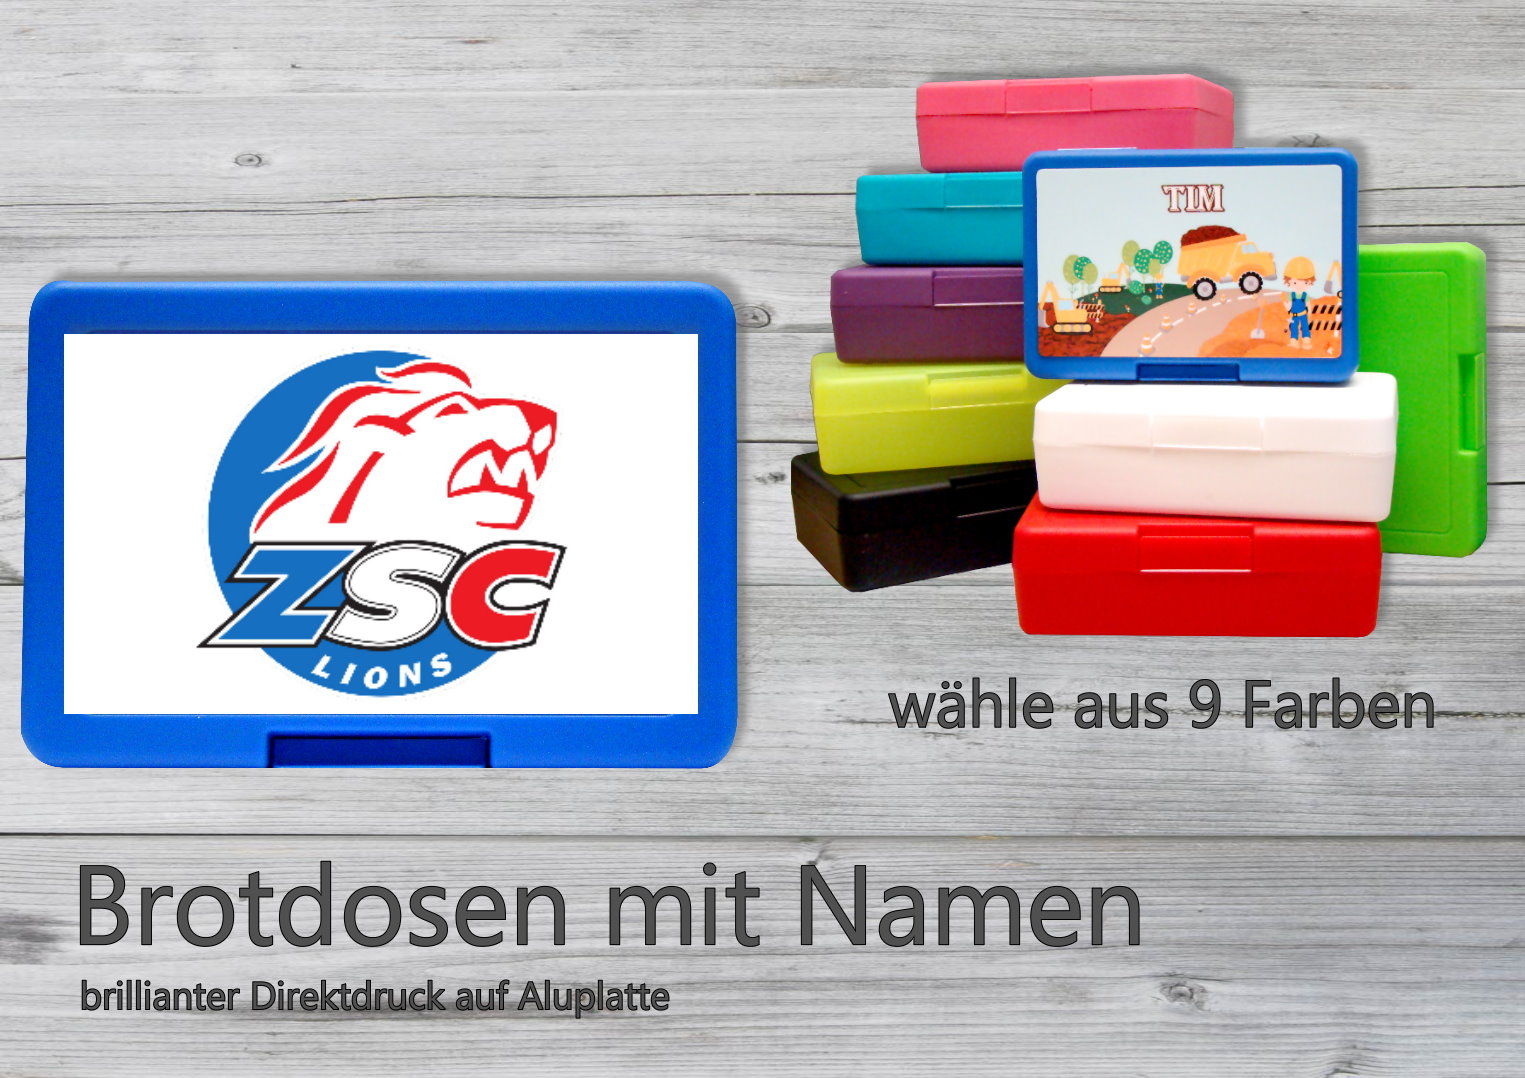 zn nibox zsc zn nib xli personalisiertes nuggiketteli. Black Bedroom Furniture Sets. Home Design Ideas